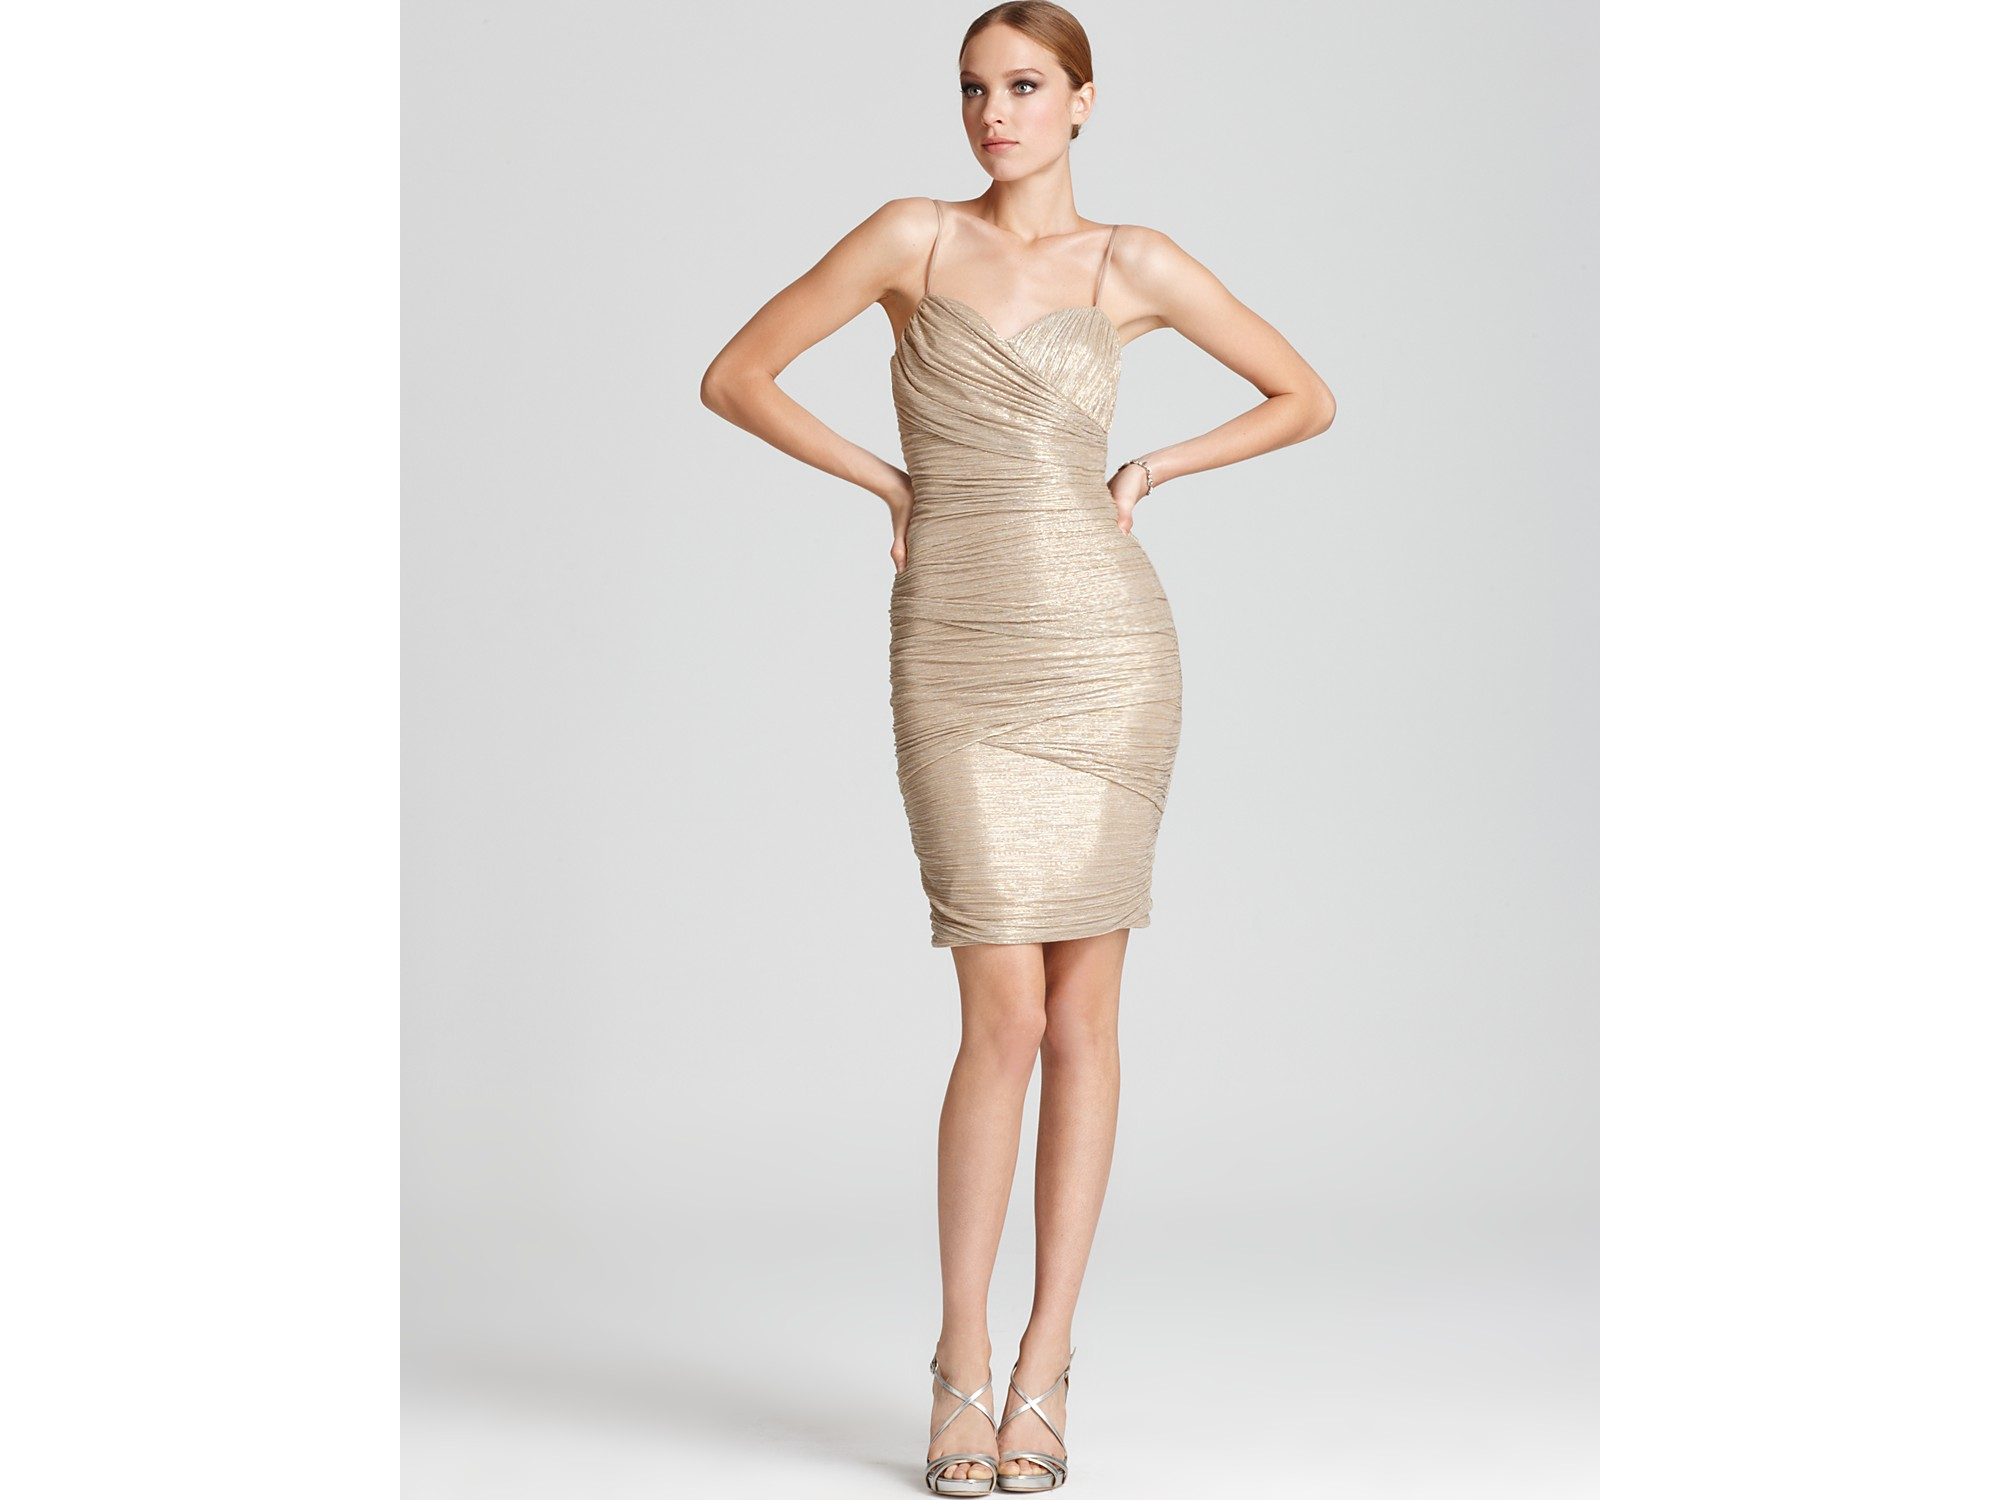 f0e2bcb89ee71 Max & Cleo Shiny Dress Esther in Natural - Lyst